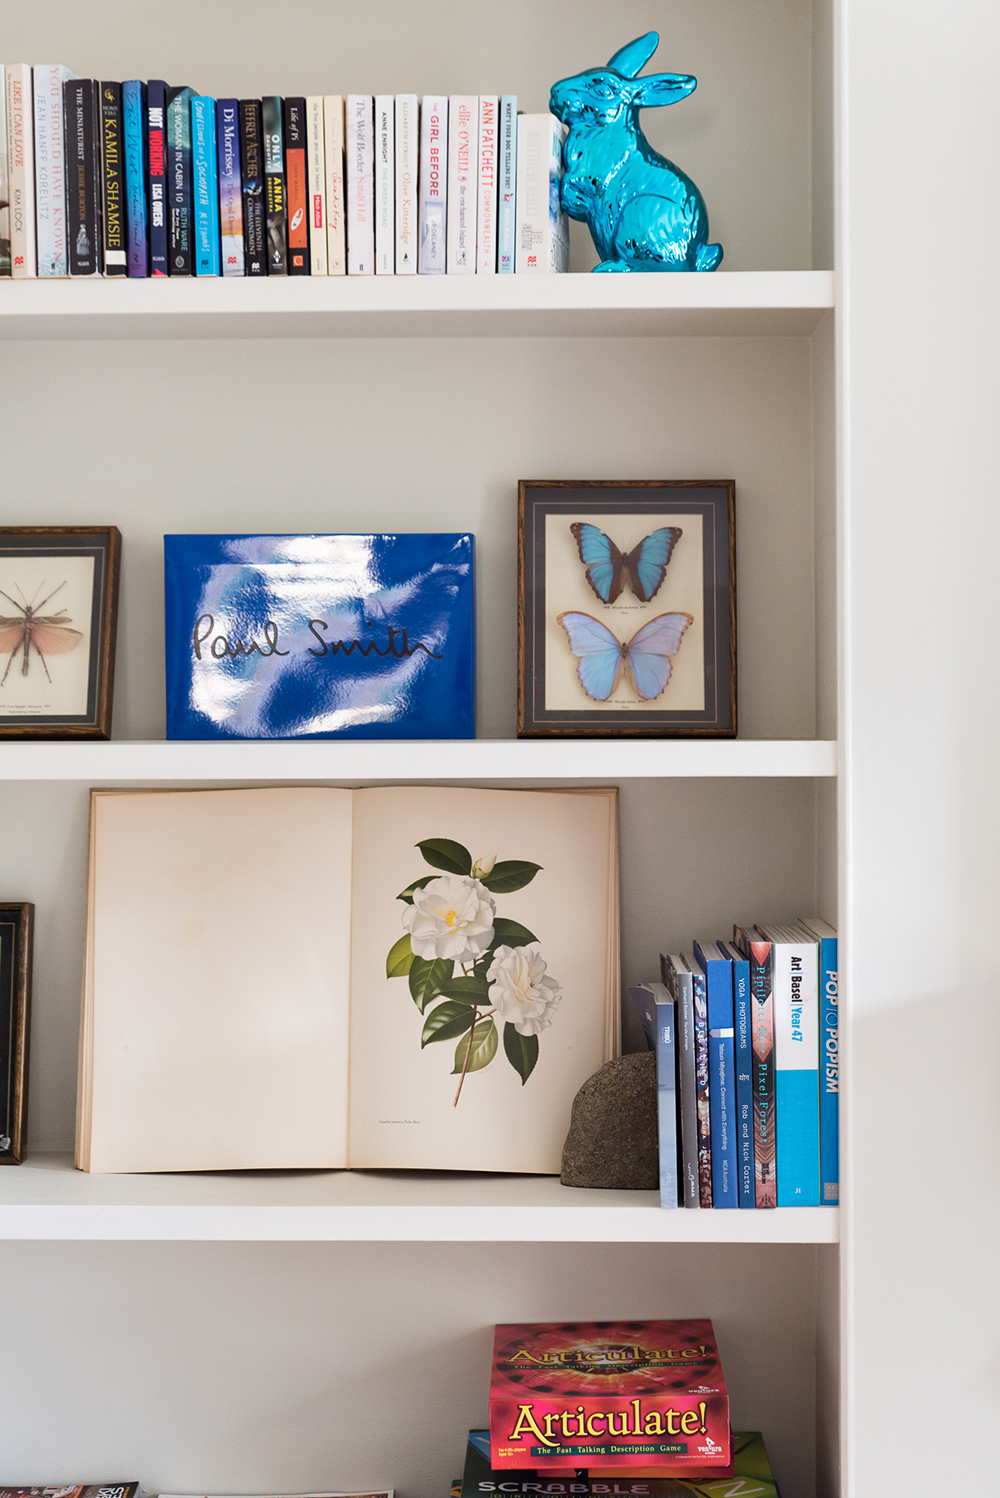 Interior styling details and library at Mona Farm